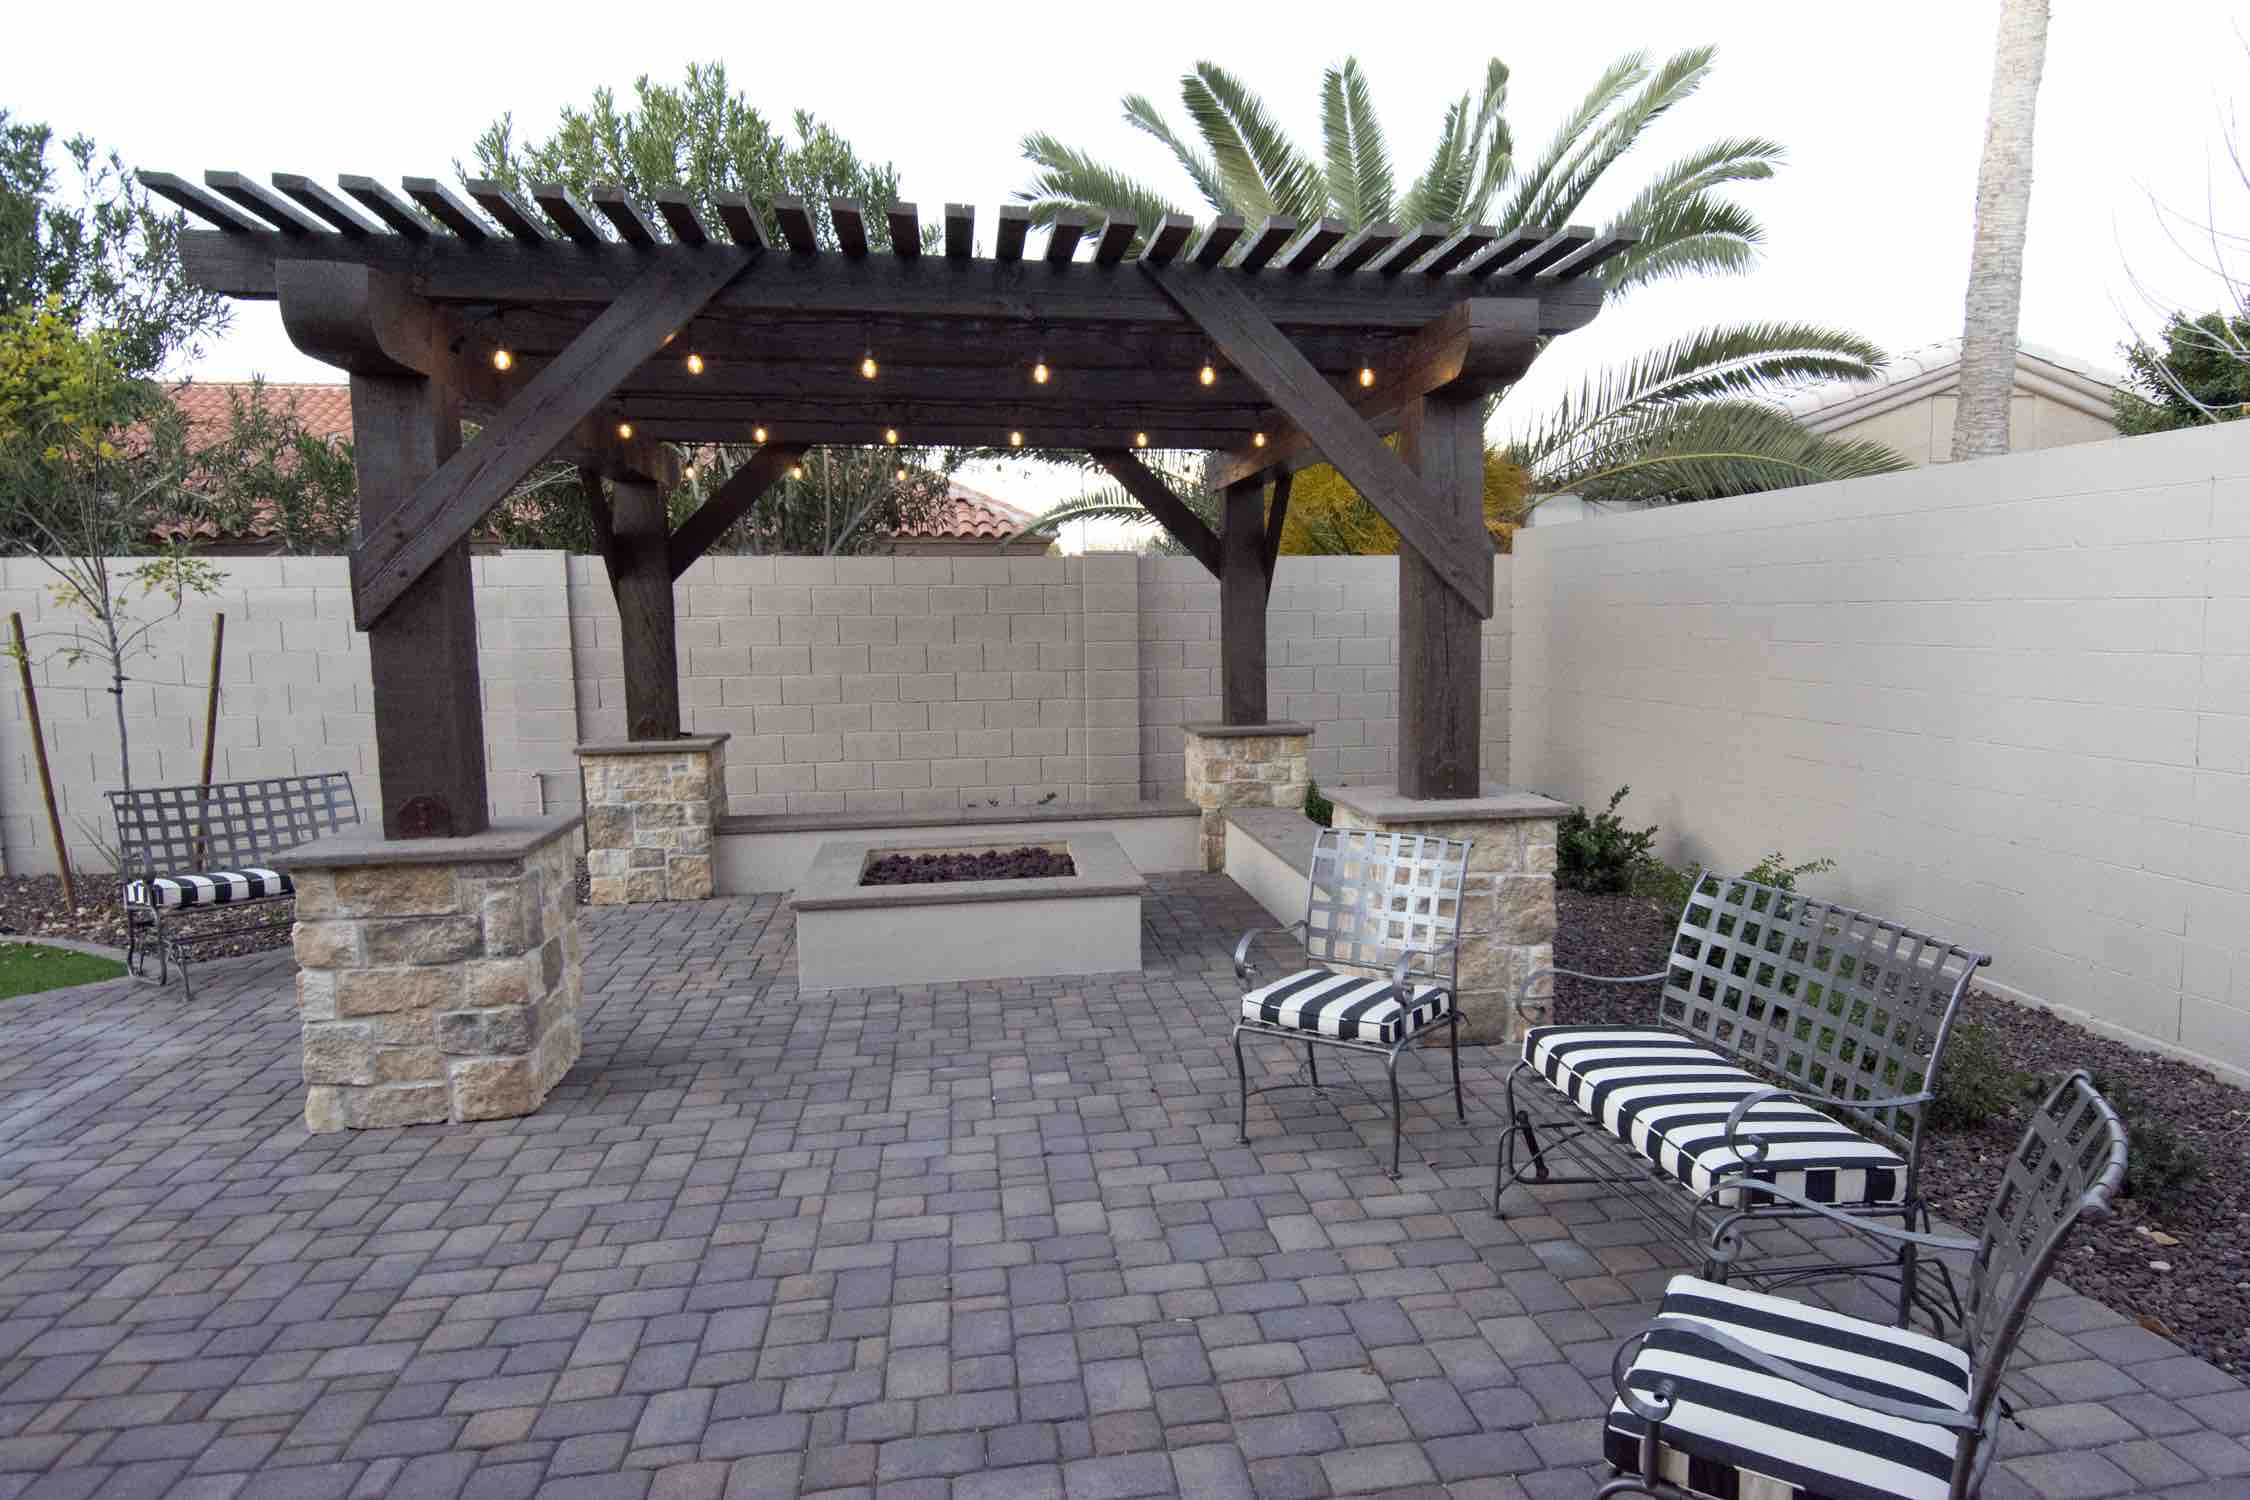 cozy and designs the patios outdoor flagstone plans firepit gallery decks cool with pergola decoration design patio home backyard best ideas